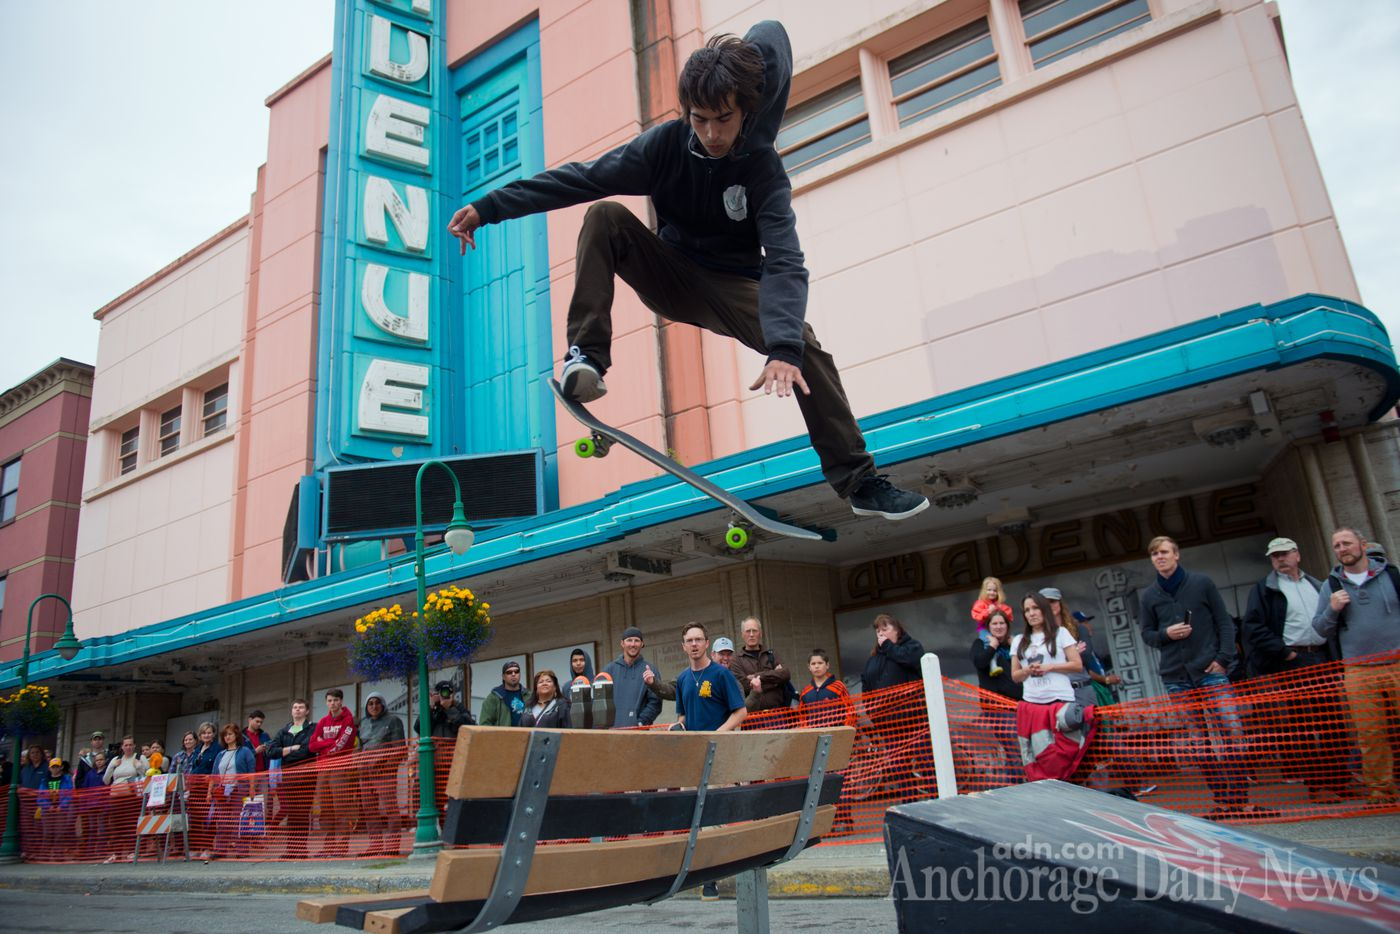 Lorenzo Marqueda hits a ramp on a skateboard street course during the Solstice Festival. Part of Fourth Avenue was closed off to make way for food and entertainment at the Downtown Summer Solstice Festival on Saturday, June 21, 2014. (Marc Lester / ADN)